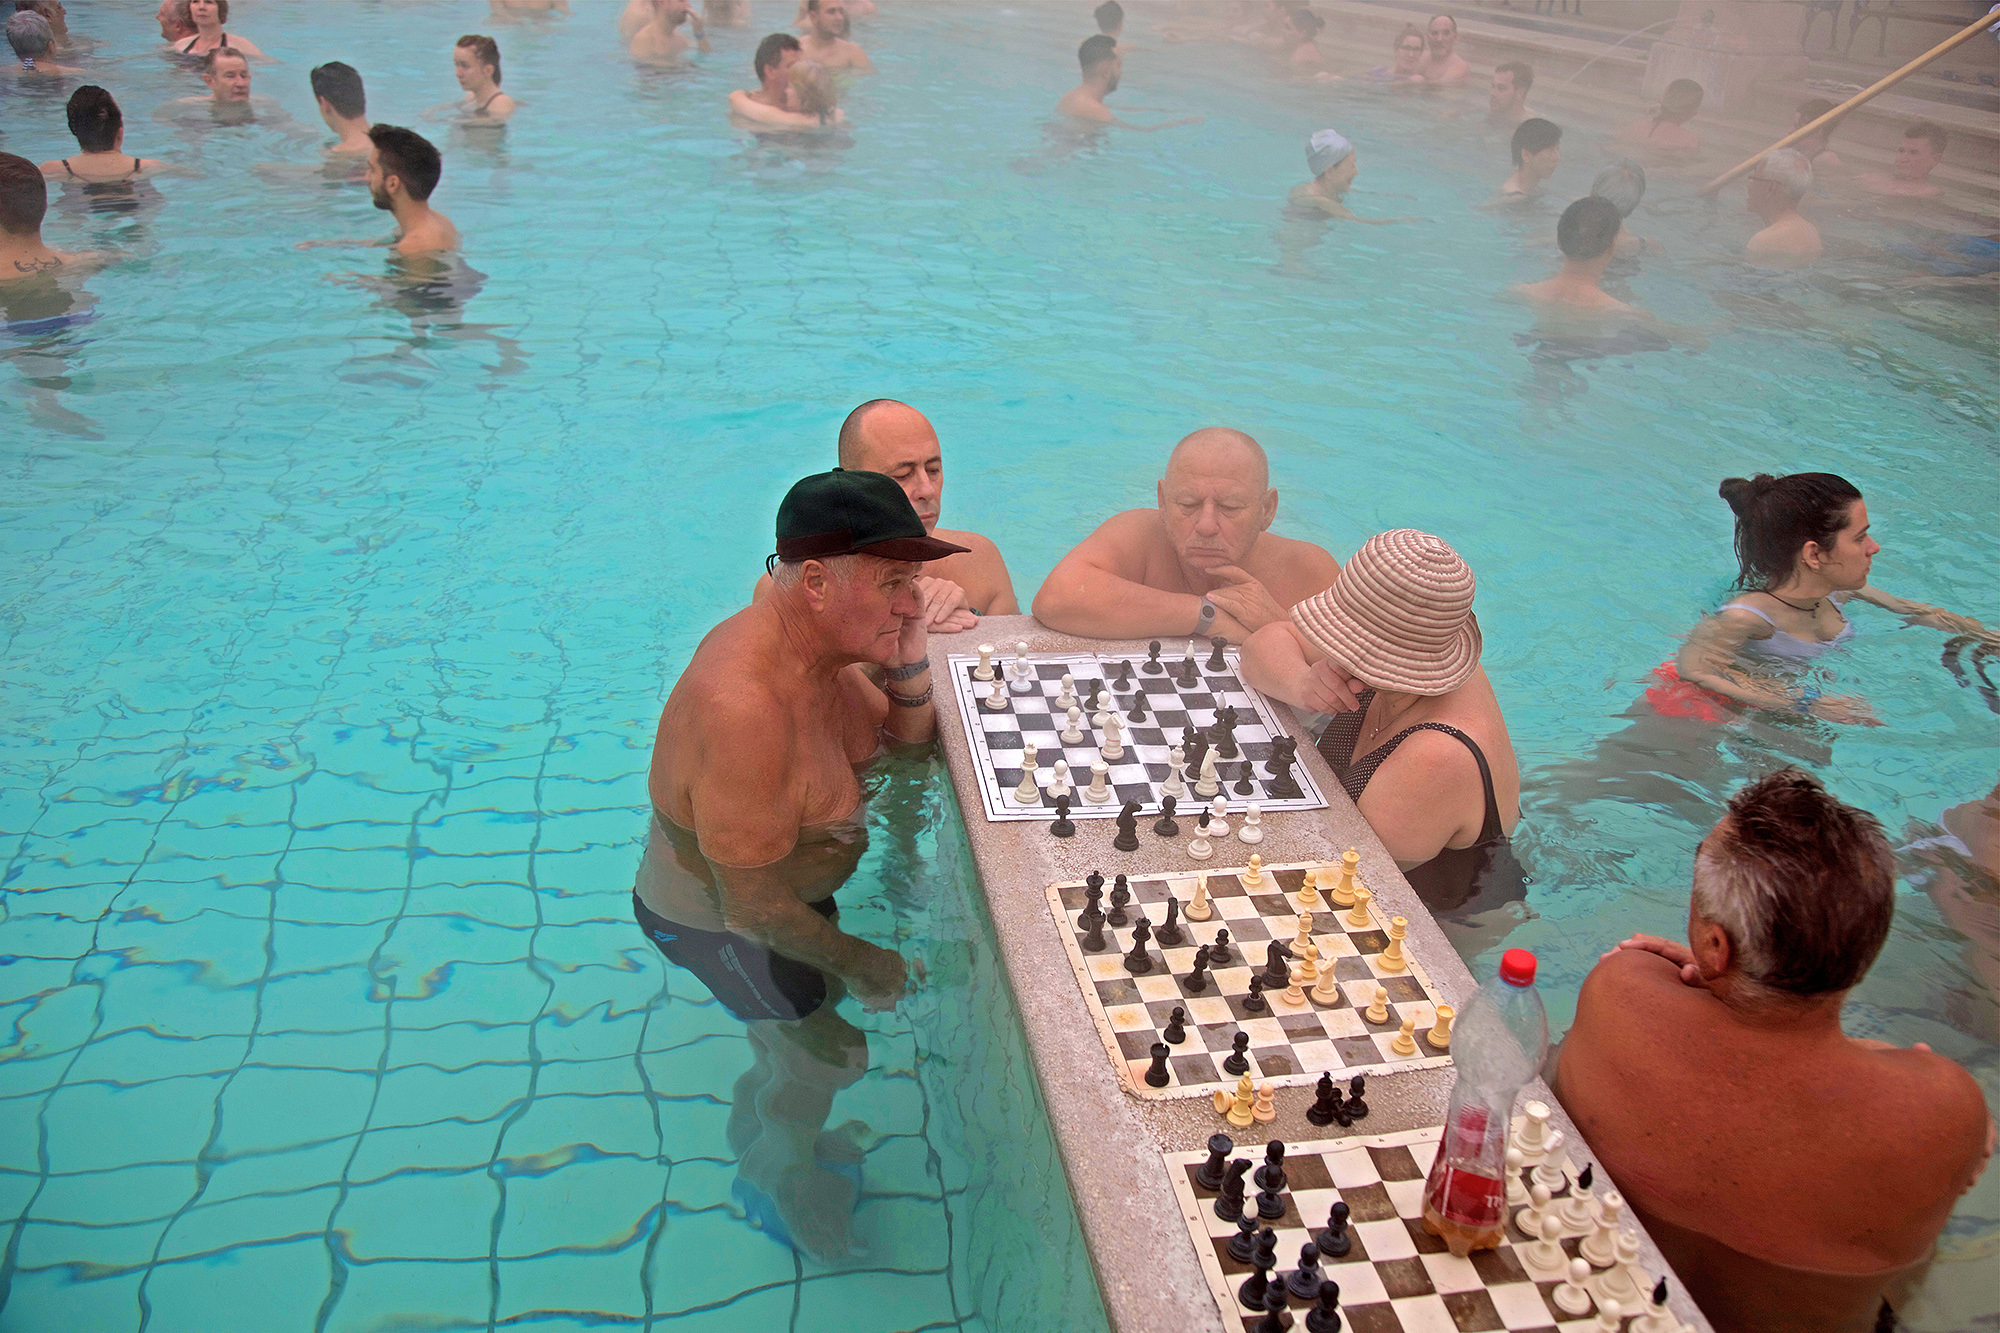 People playing chess in swimming pool